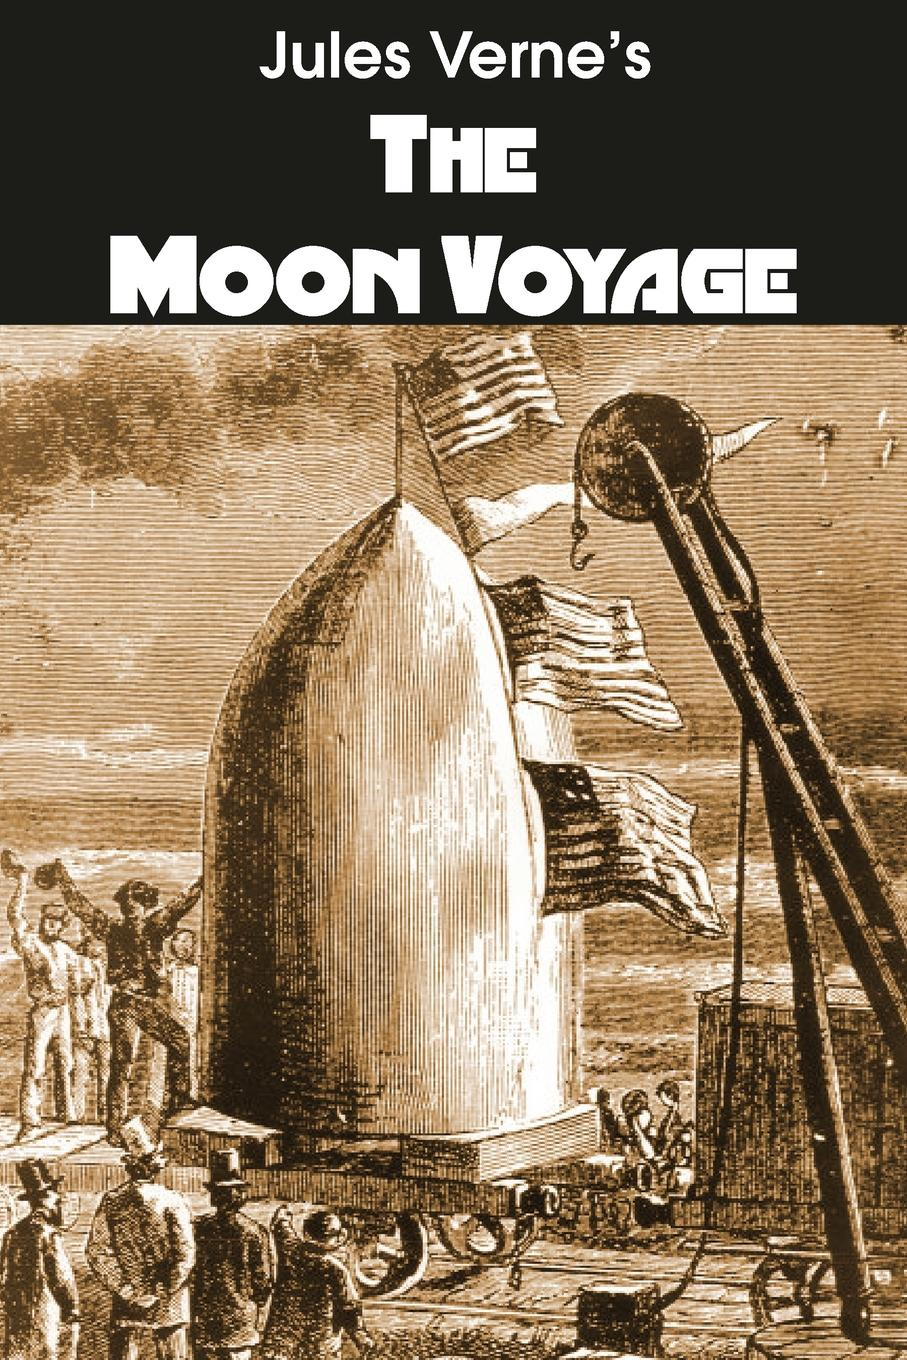 Jules Verne The Moon Voyage of a fire on the moon